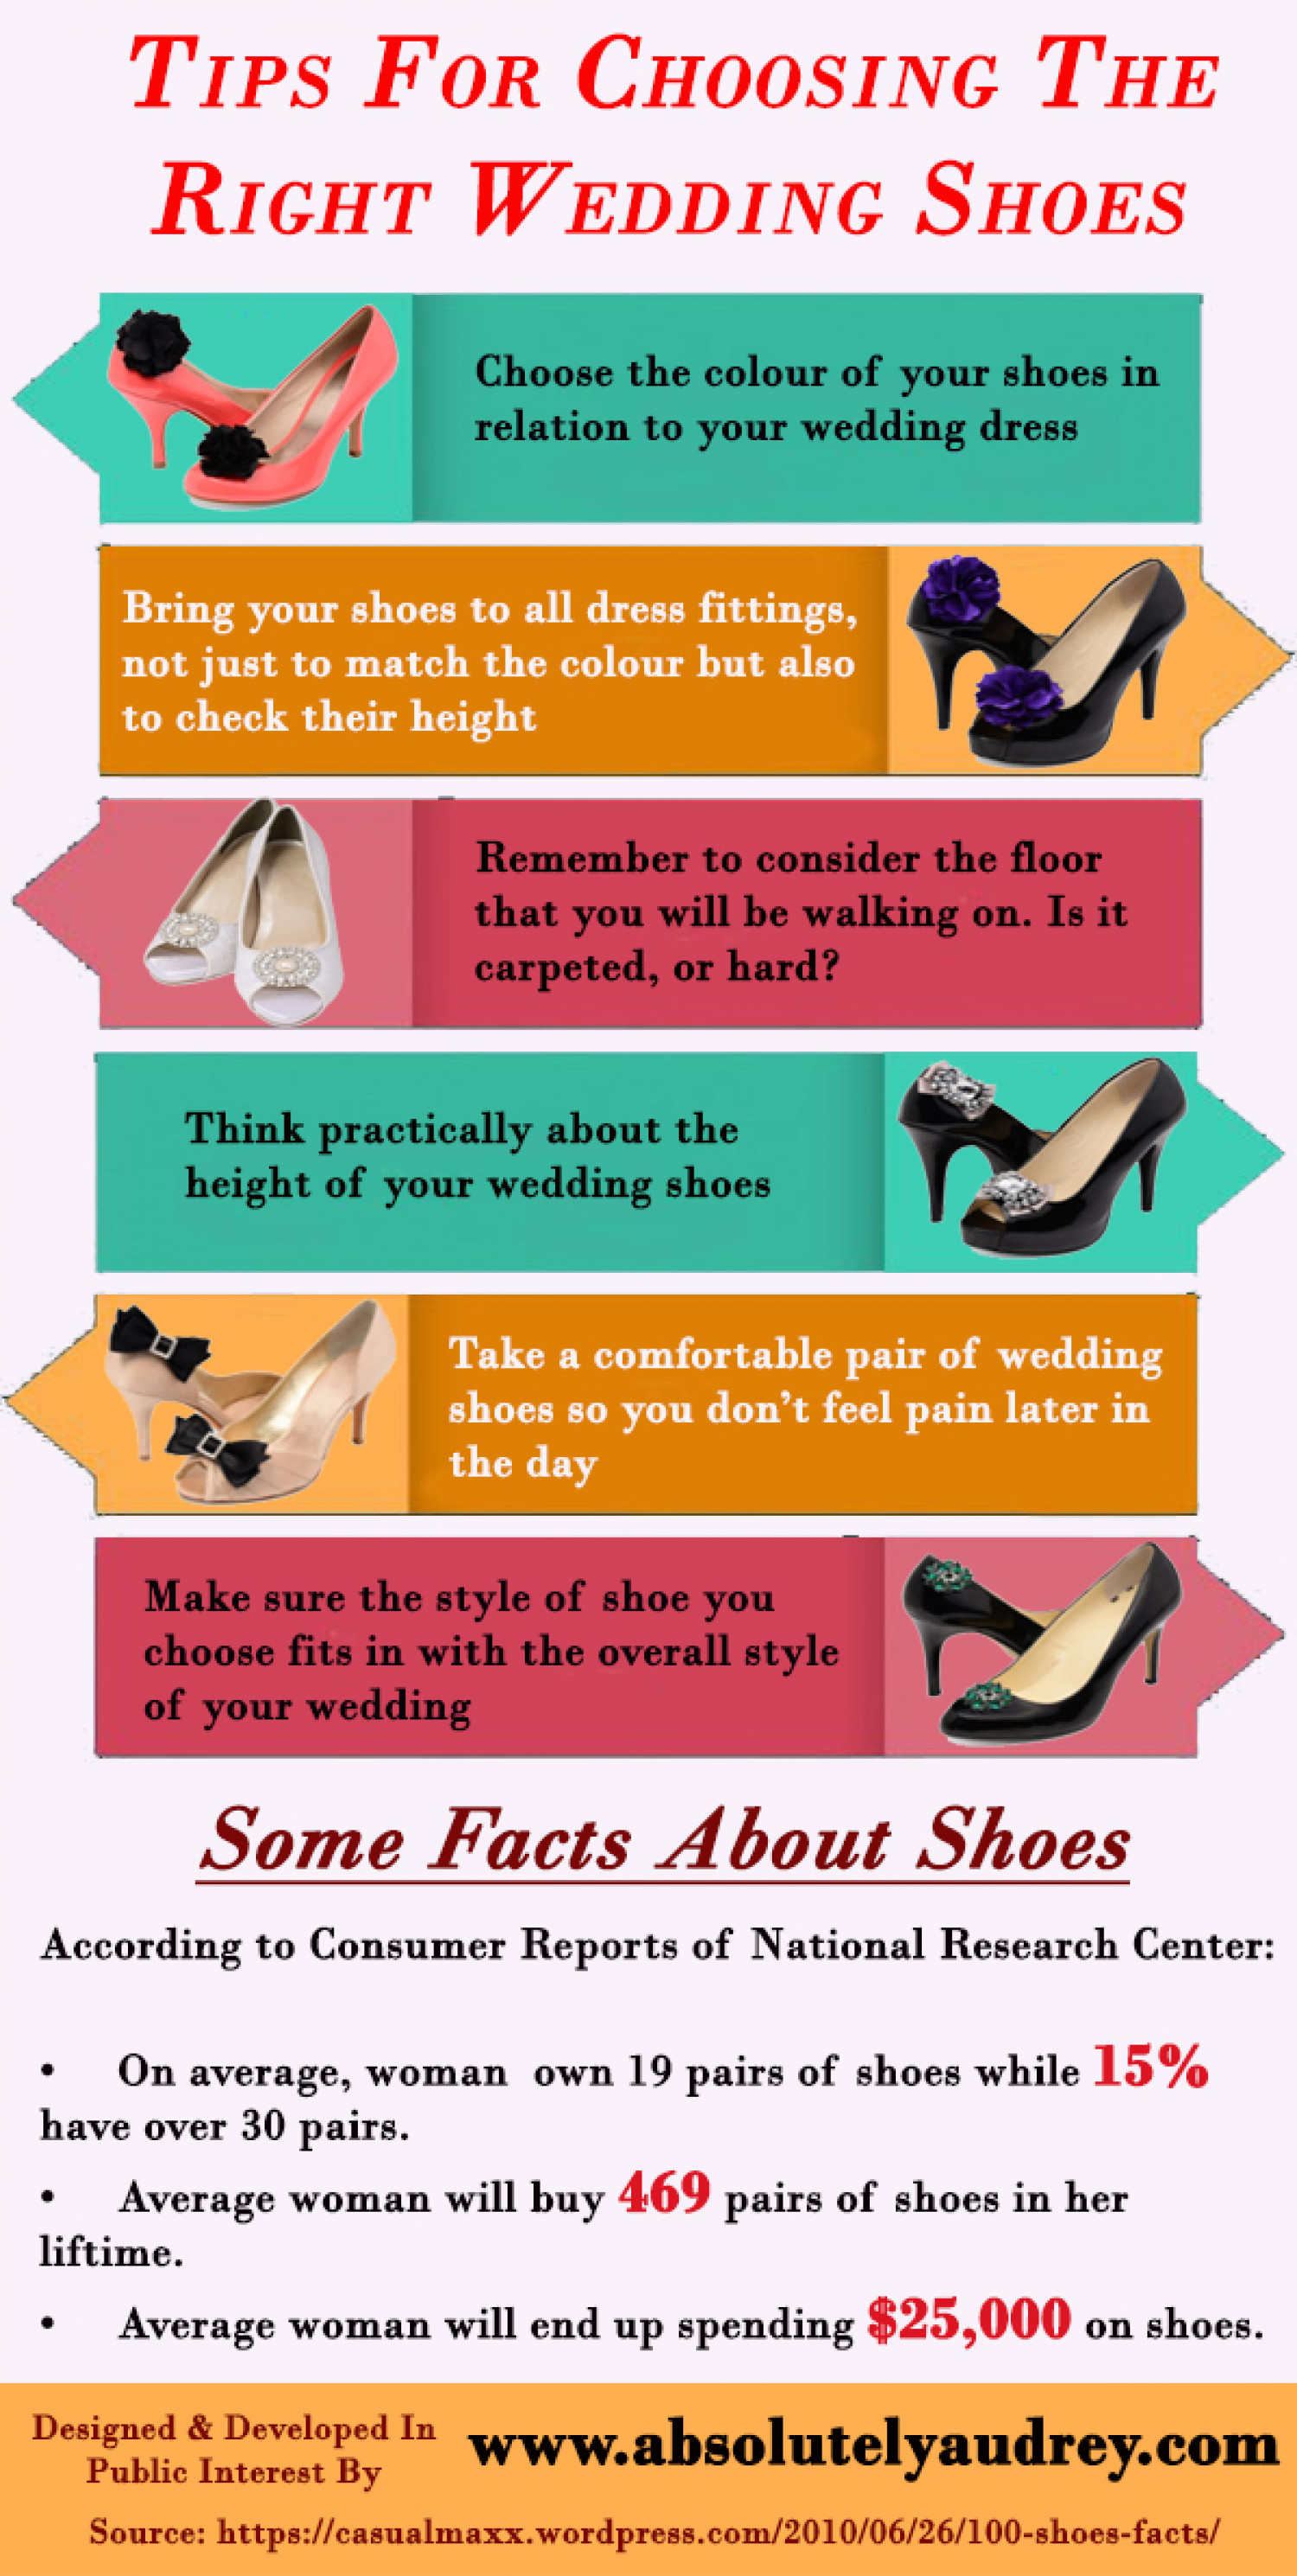 Tips for Choosing the Right Wedding Shoes